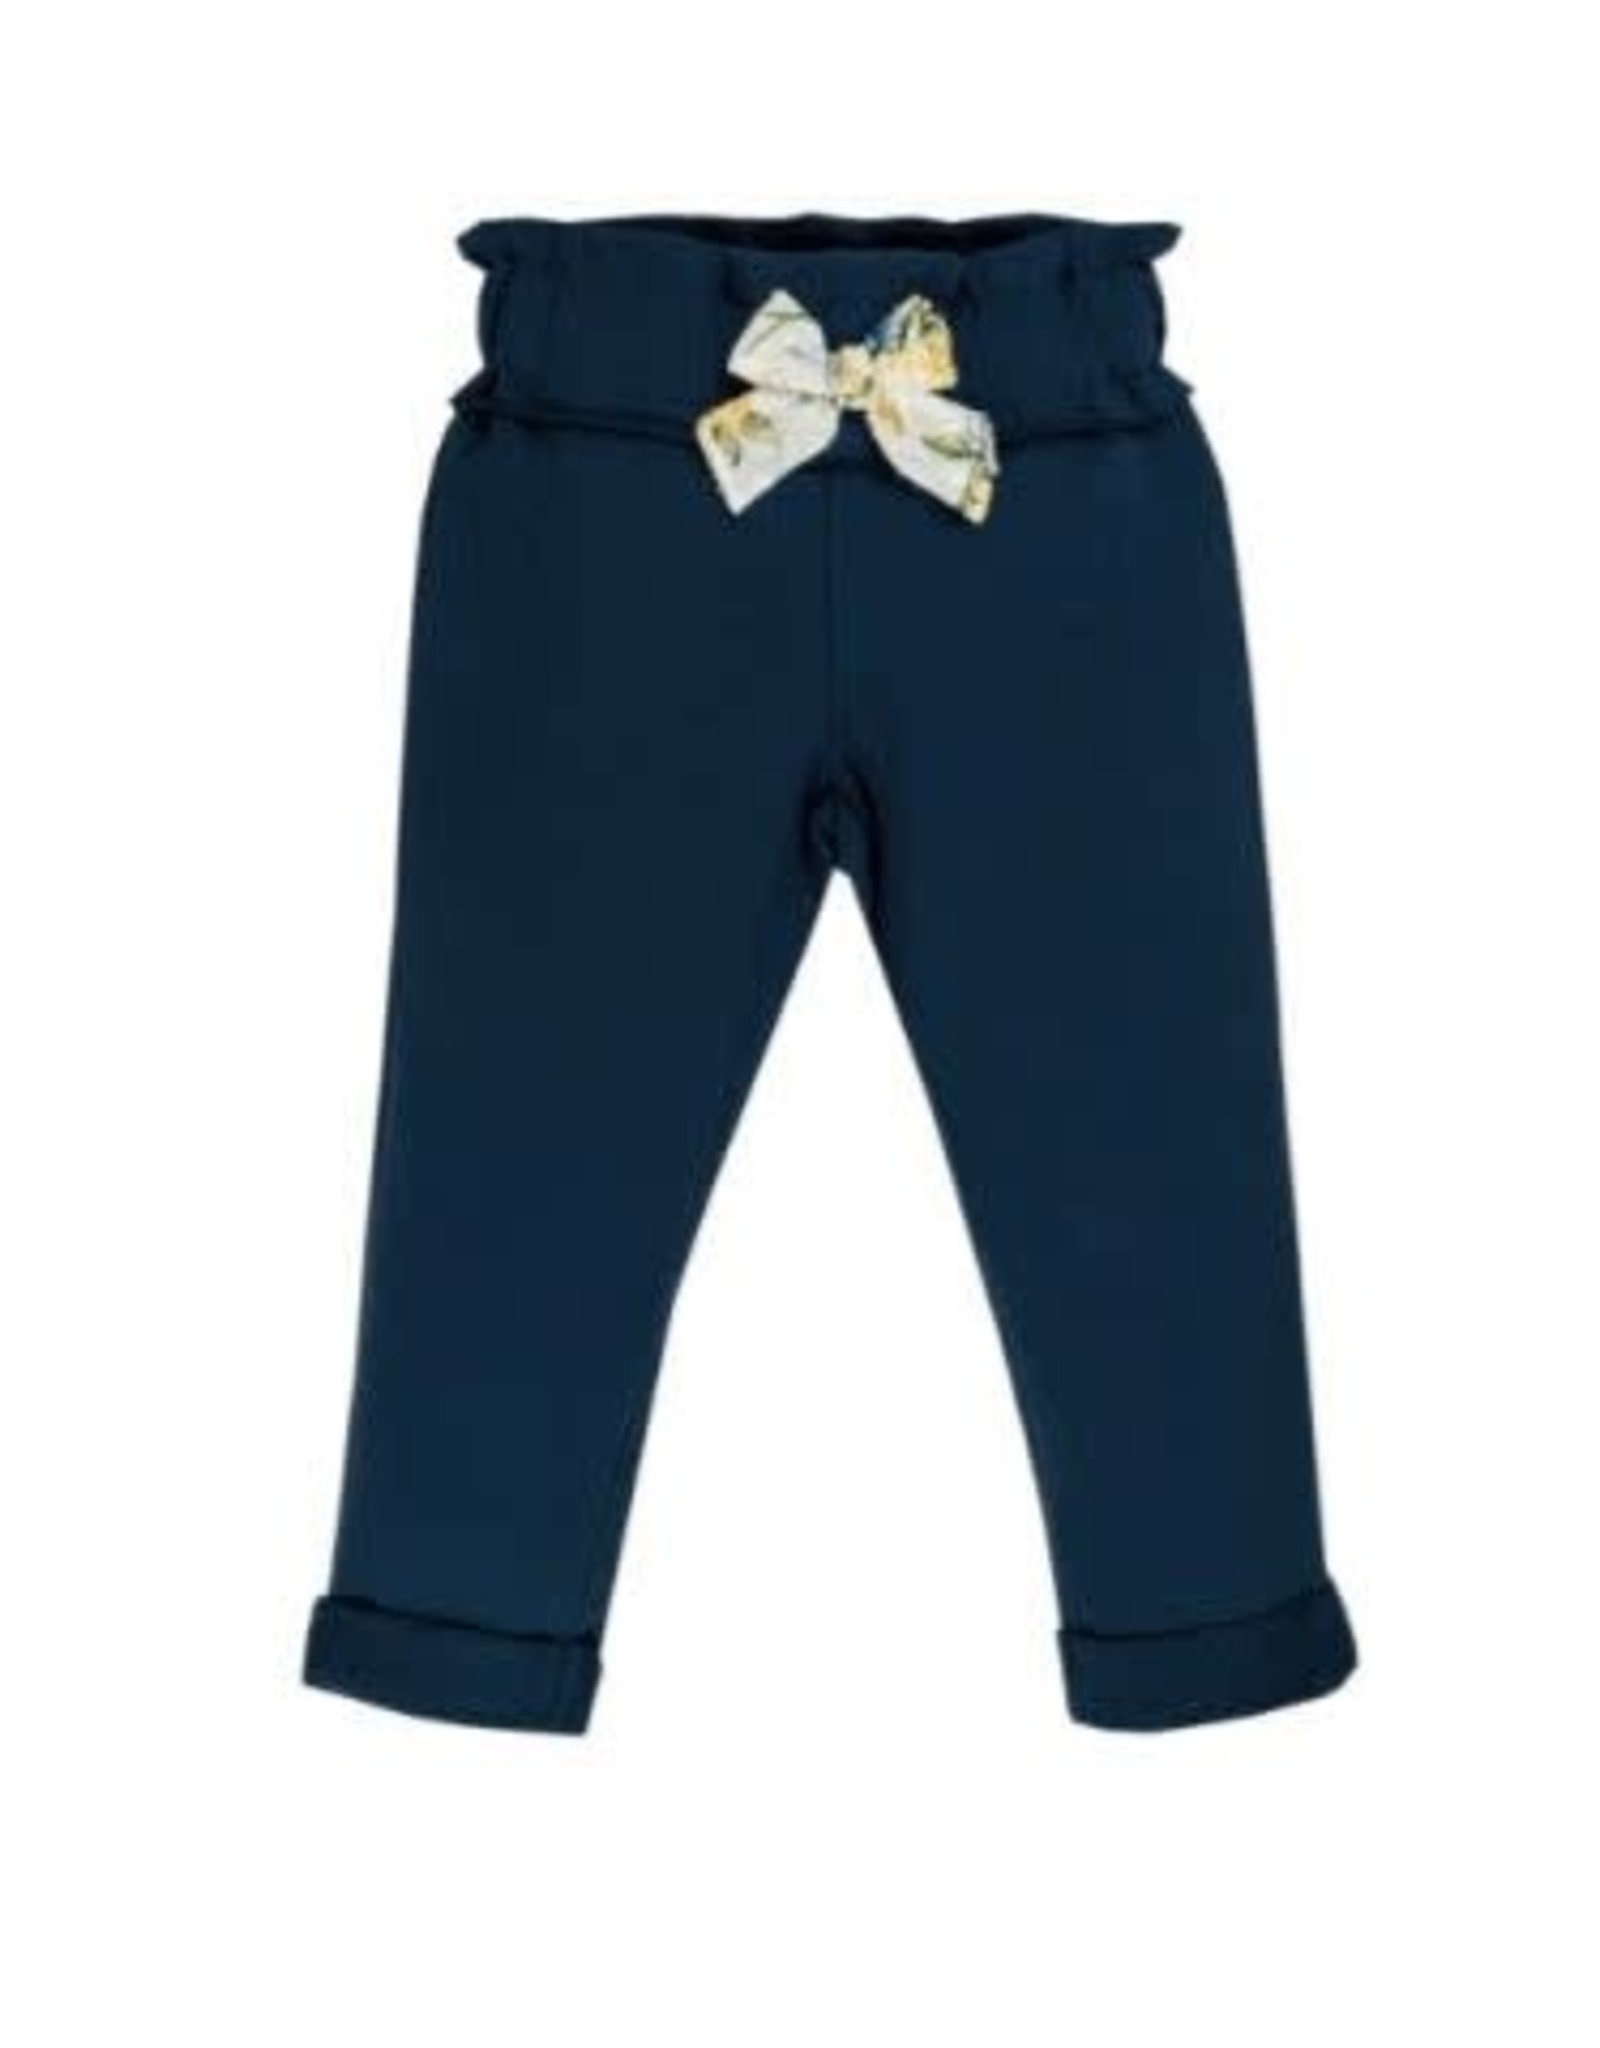 EMC Stretch Fleece Trousers with Bow